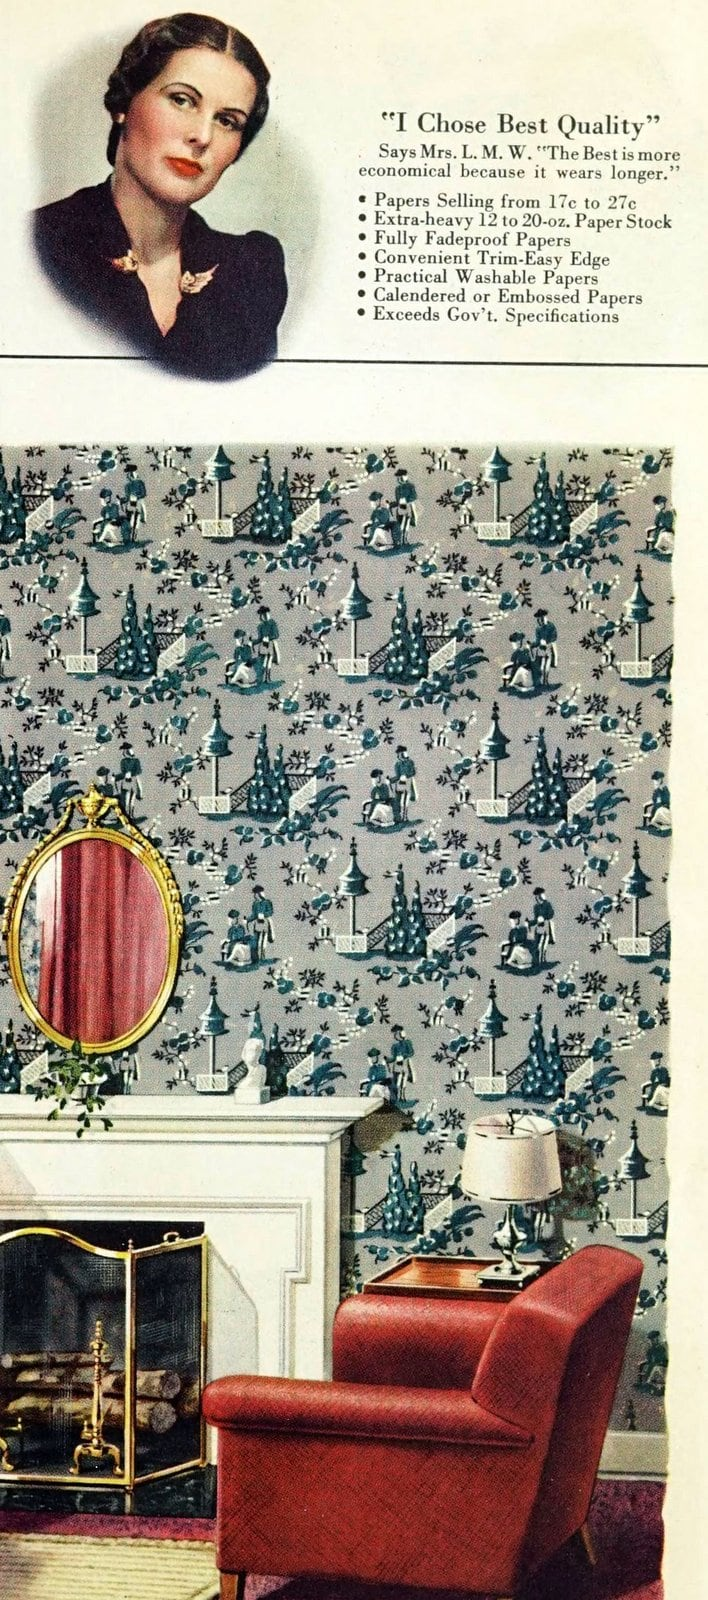 Vintage home decor with wallpaper from 1940 (3)